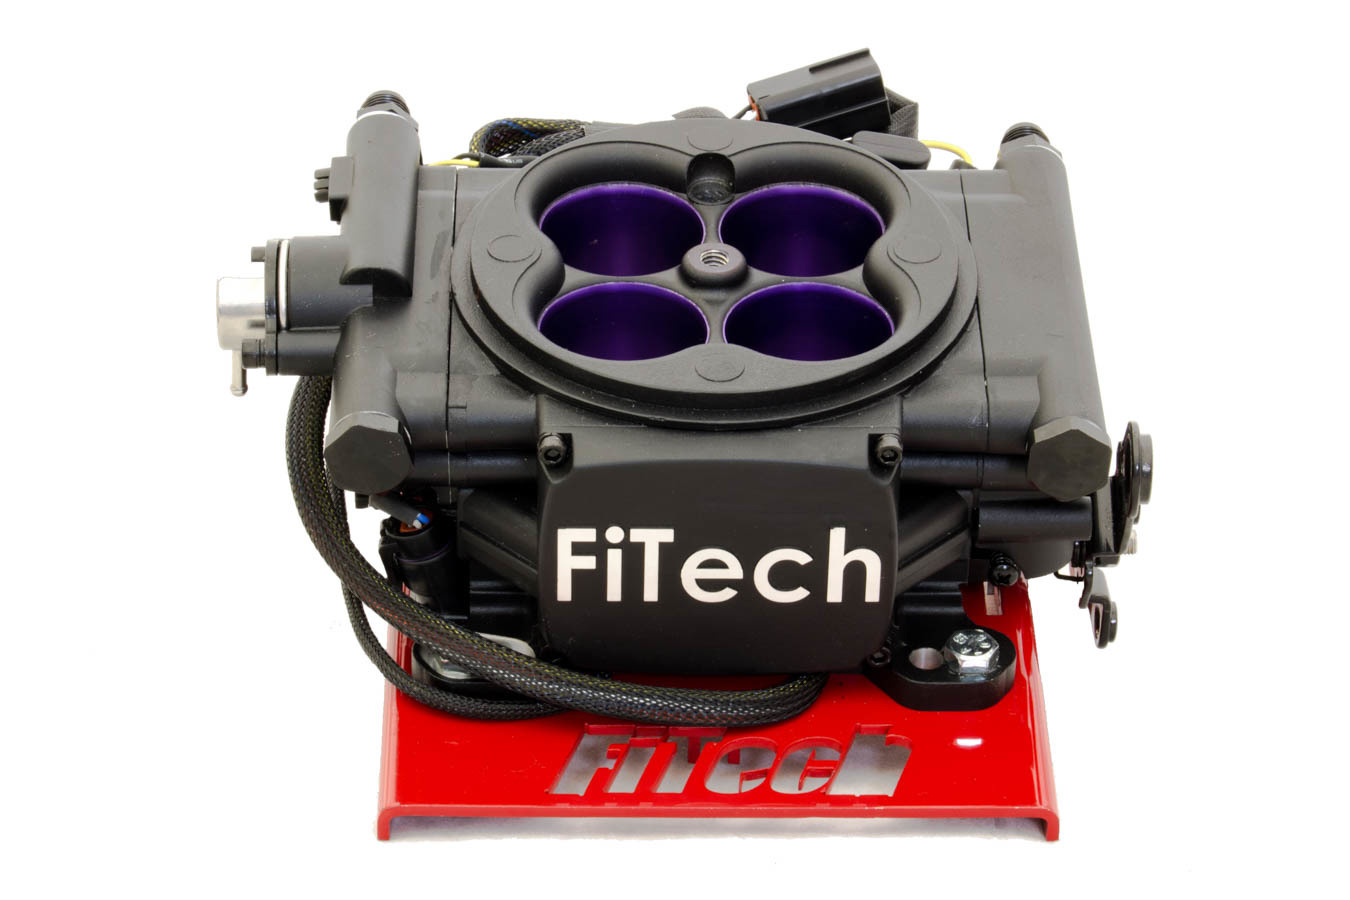 Fitech Fuel Injection Mean Street EFI System Up to 800HP